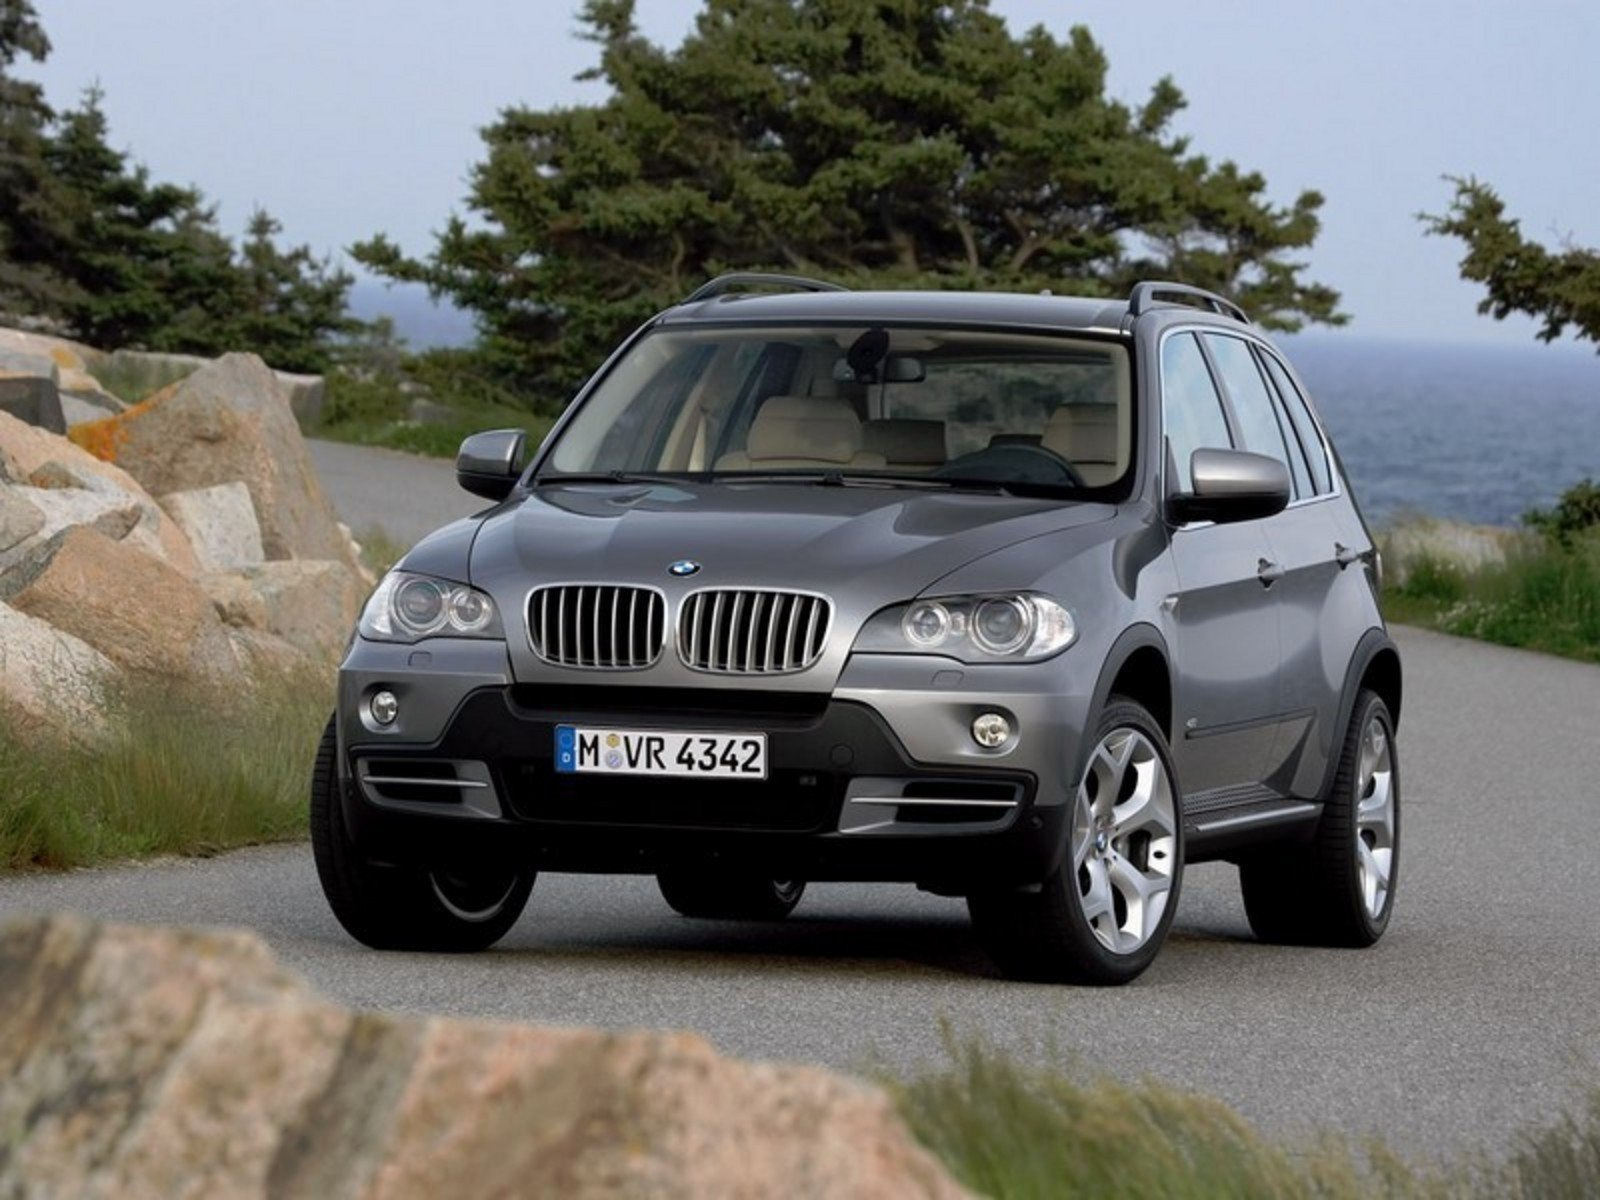 2007 bmw x5 picture 92700 car review top speed. Black Bedroom Furniture Sets. Home Design Ideas